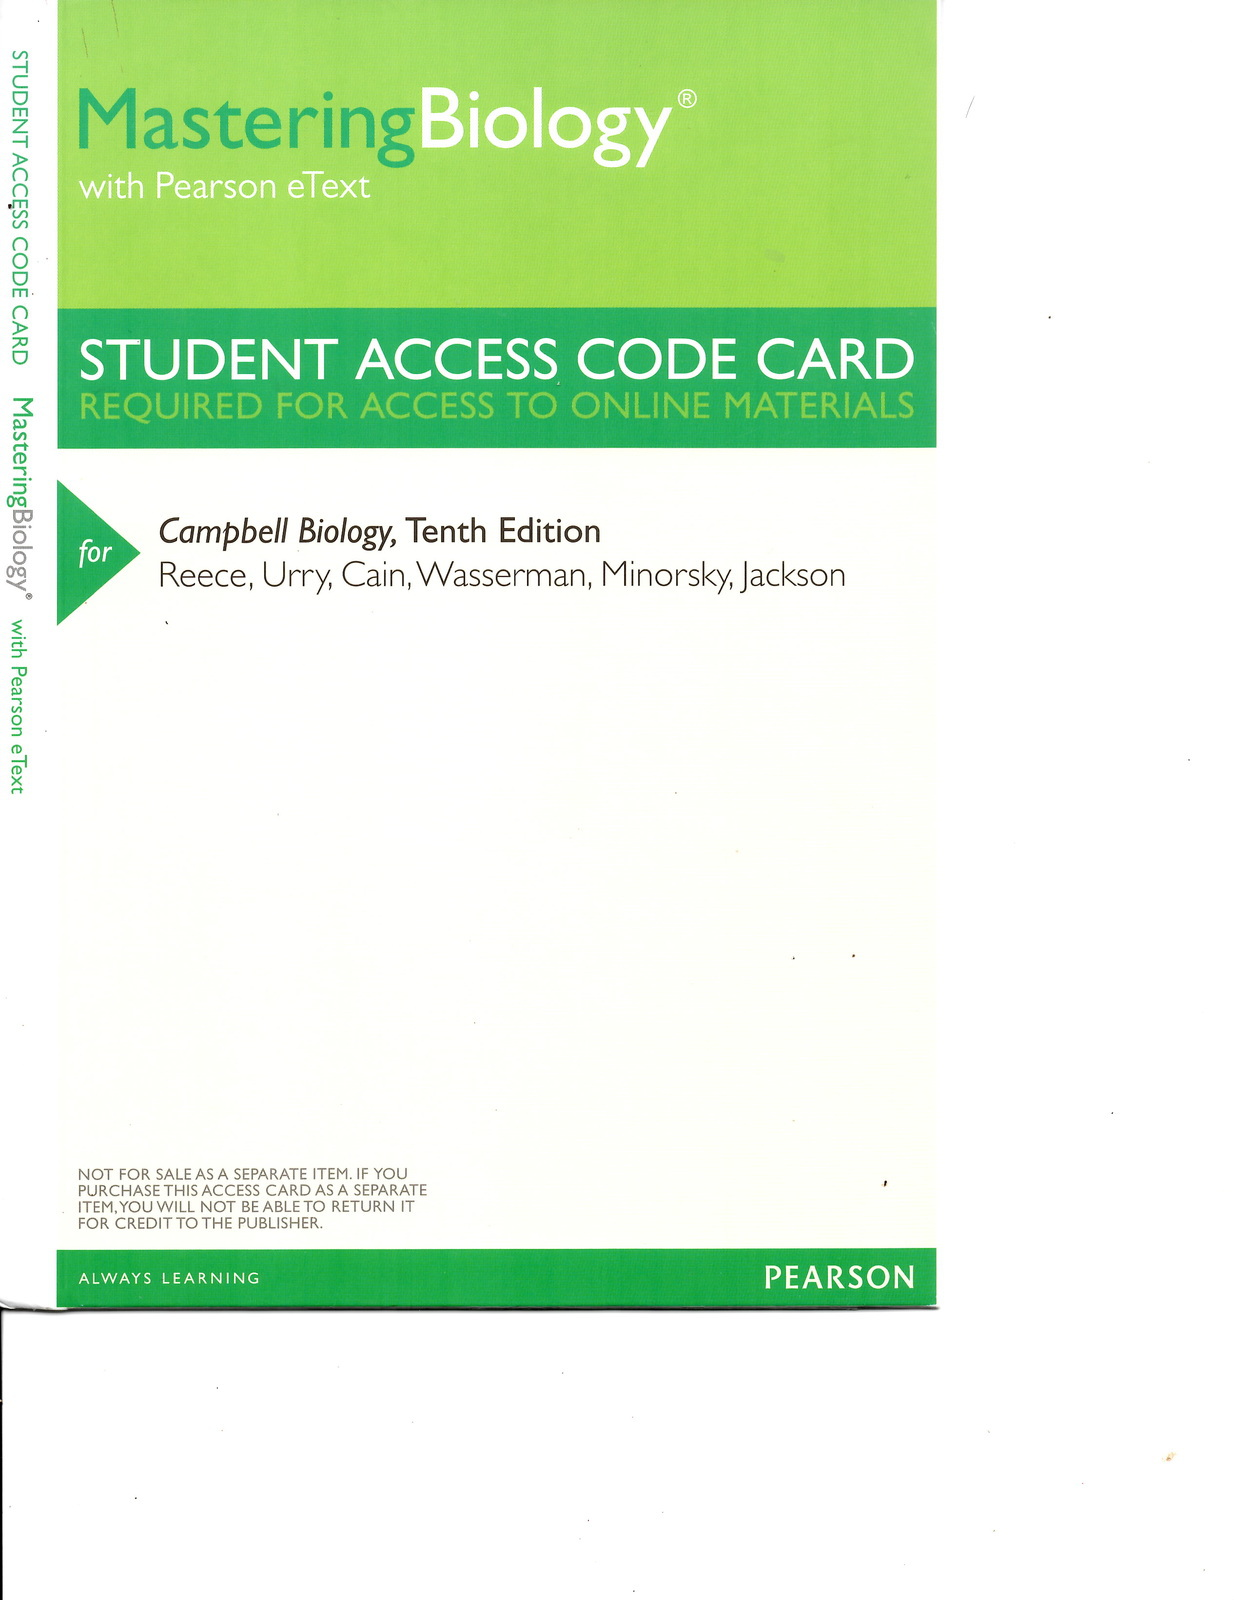 Coupon code for pearson